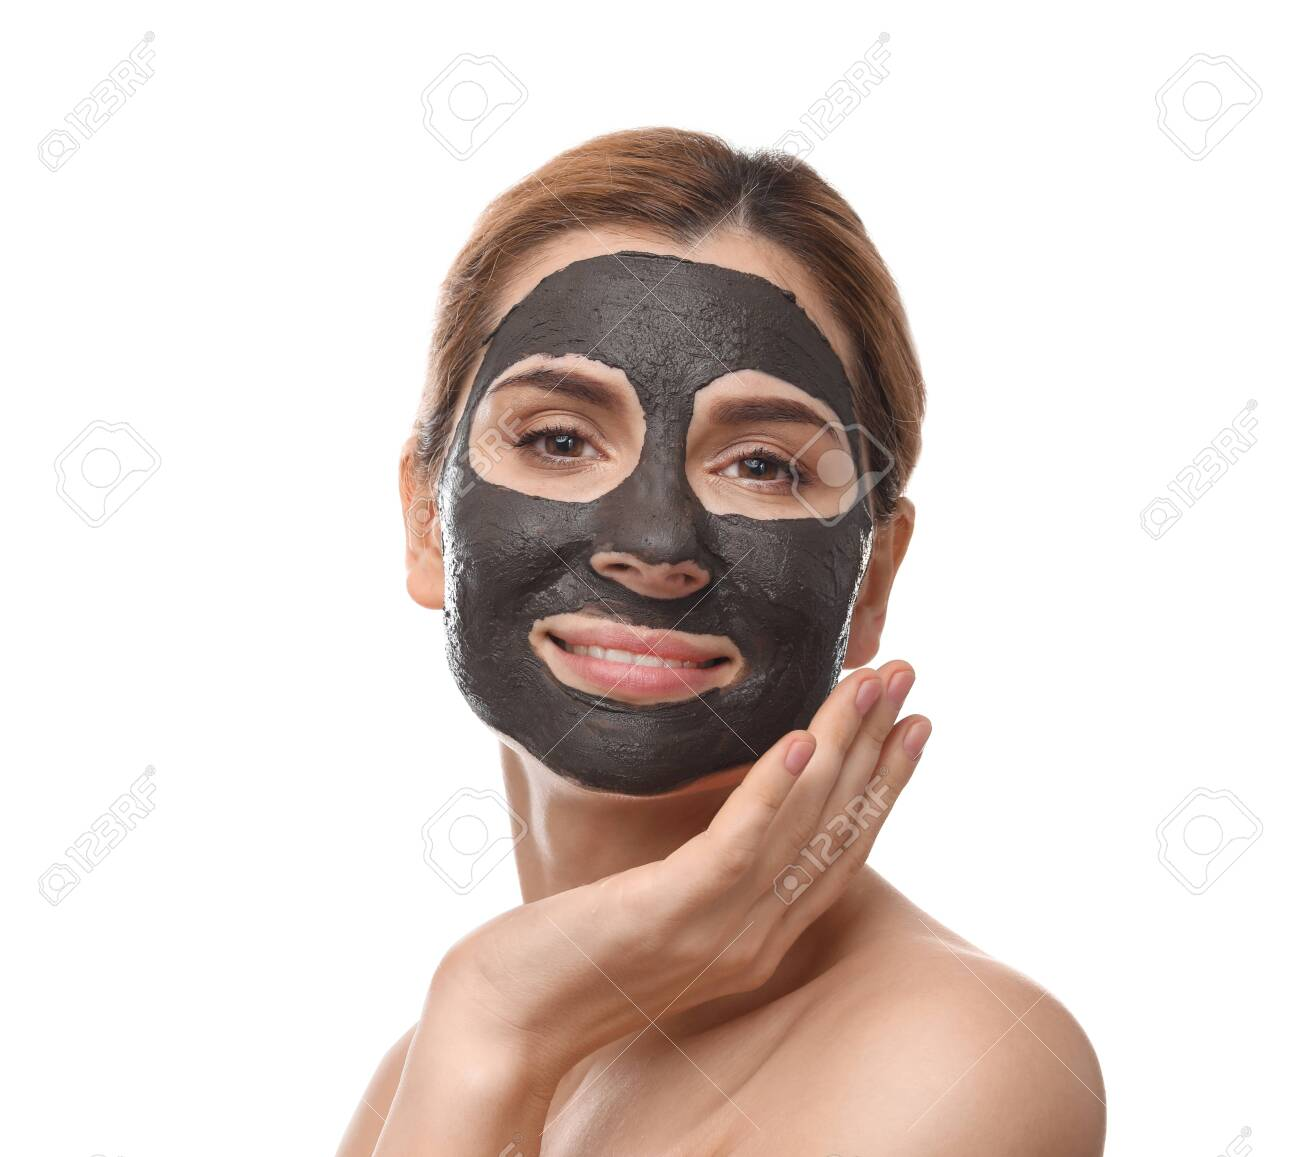 Beautiful woman with black mask on face against white background - 125265842